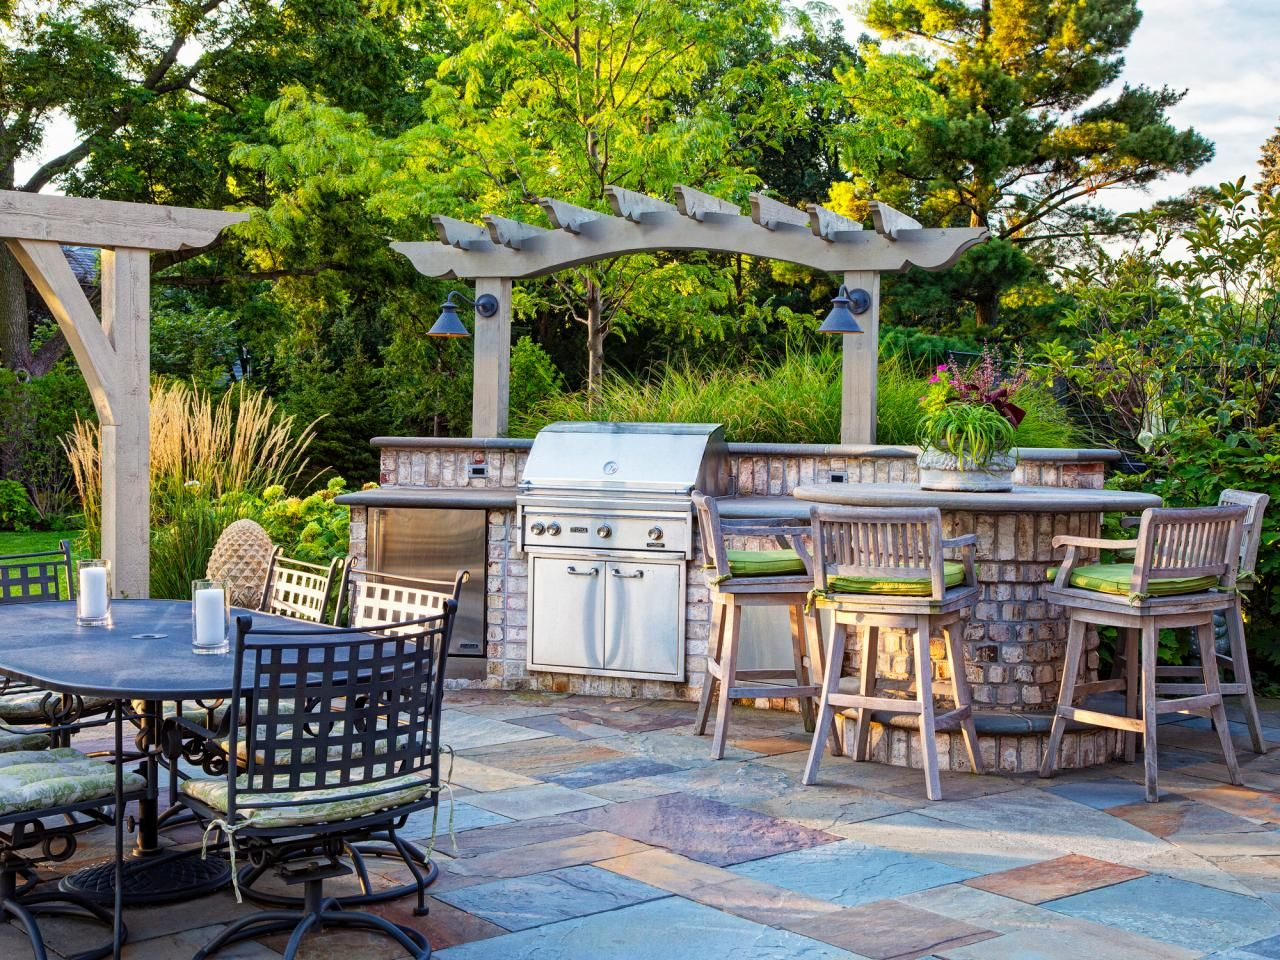 Pictures Of Outdoor Kitchens Gas Grills Cook Centers Islands Fascinating Outdoor Kitchen Bar Designs Review